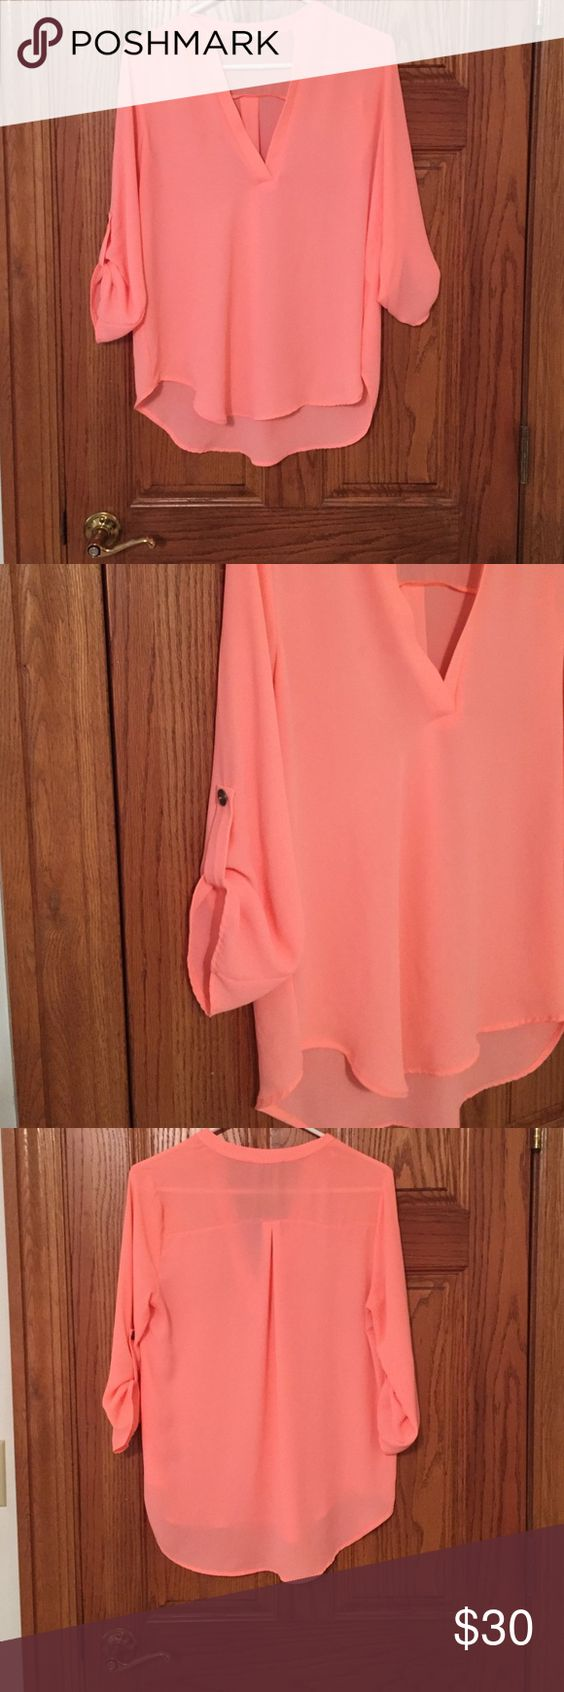 Lush Coral blouse Great condition. Lush deep v neck coral blouse Lush Tops Blouses